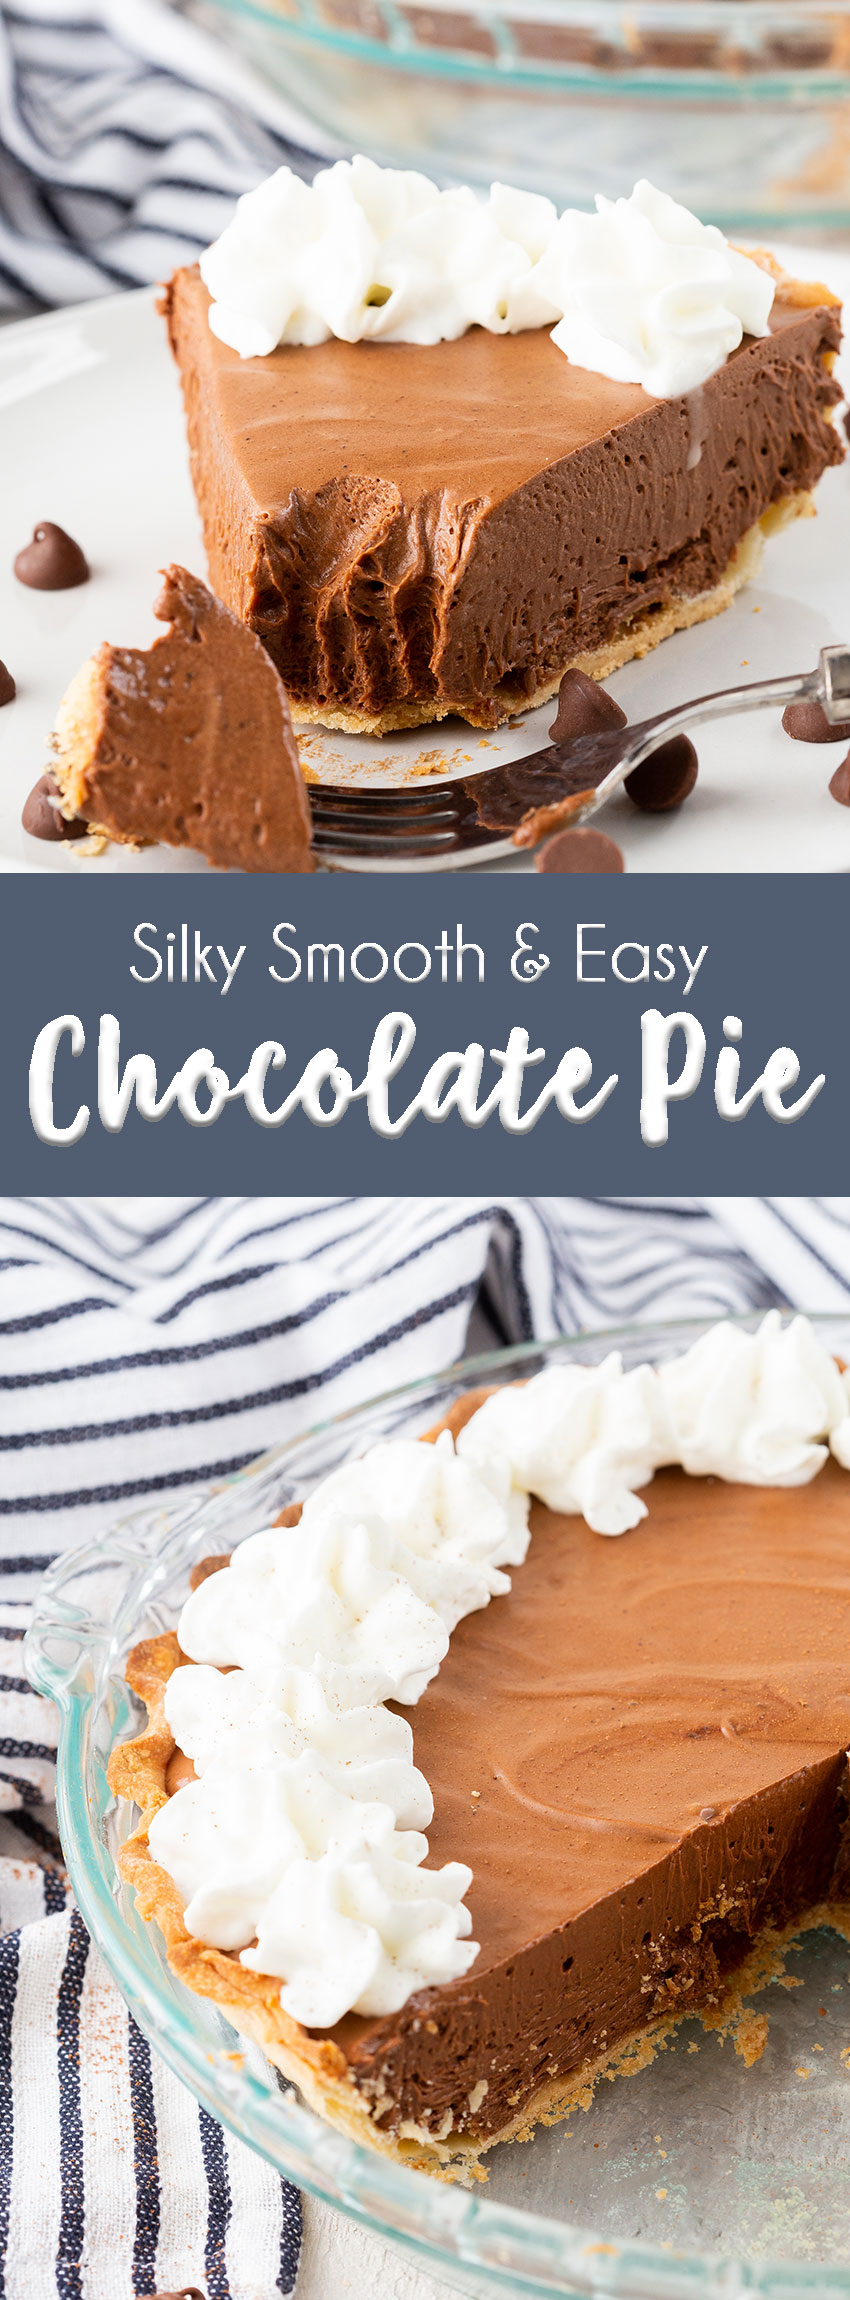 Chocolate Pie- a silky smooth and creamy chocolate pie